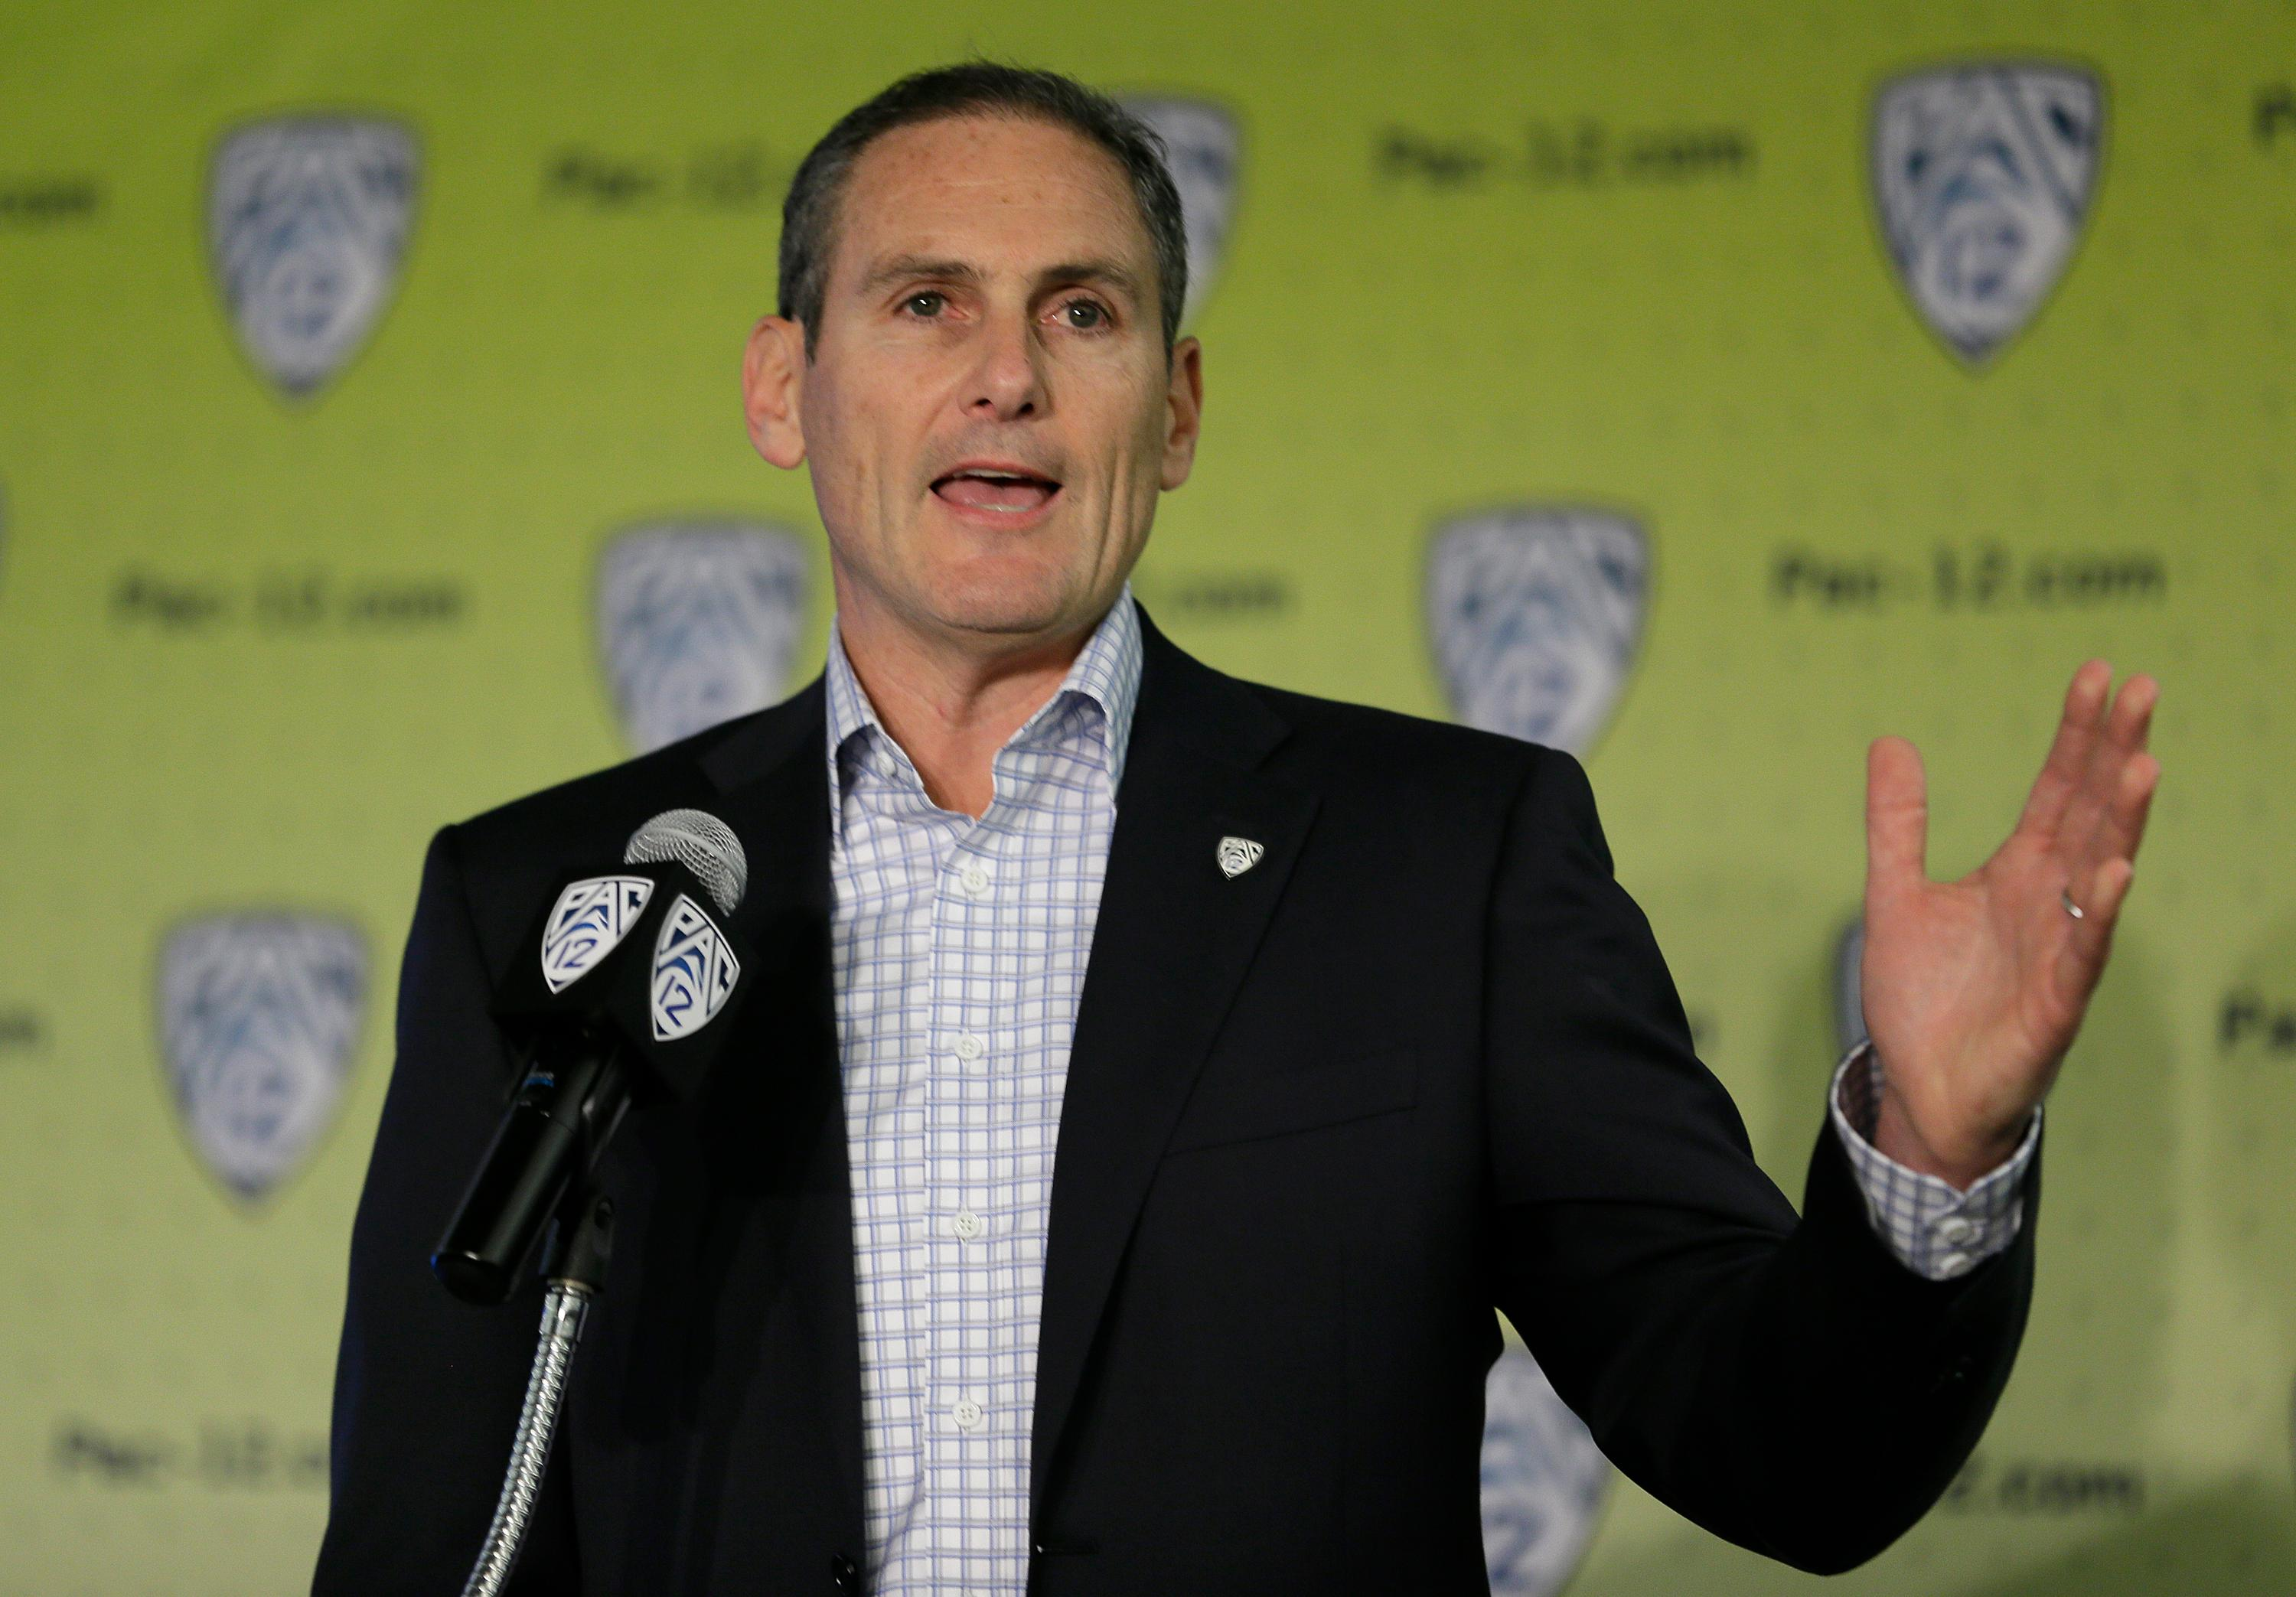 FILE - In this Oct. 12, 2017, file photo, Pac-12 commissioner Larry Scott gestures while speaking a NCAA college basketball Pac-12 media day, in San Francisco. A Pac-12 task force on reforming college basketball is recommending an end to the NBA's one-and-done rule, allowing players to return to school even after they are drafted, and that the NCAA facilitate access to agents for high school players. The Pac-12 announced the recommendations from its task force on Tuesday, March 13, 2018, and its report has been sent to the NCAA's commission on college basketball, headed by former Secretary of State and Stanford University Provost Condoleezza Rice. (AP Photo/Eric Risberg, File)